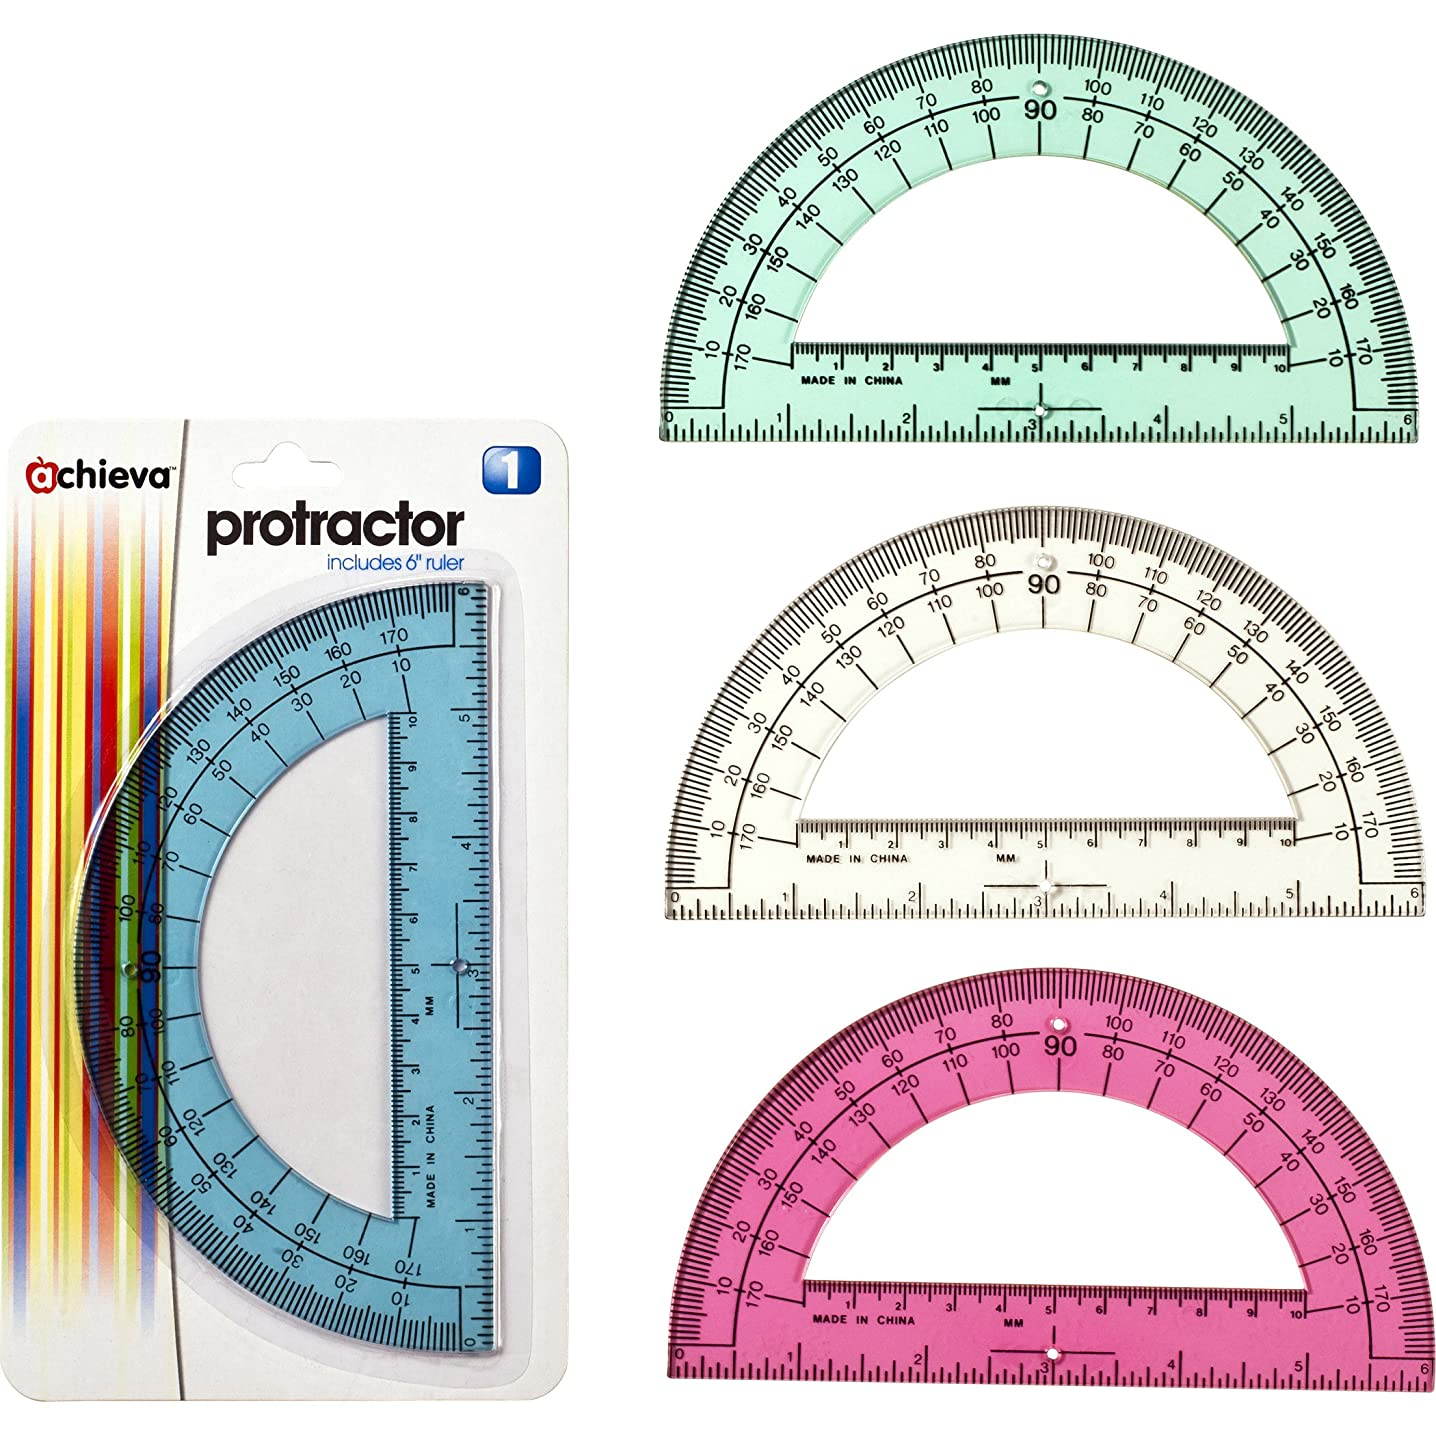 Officemate OIC Achieva Protractor with 6-Inch Ruler, Box of 12, Assorted Translucent Colors (30202)